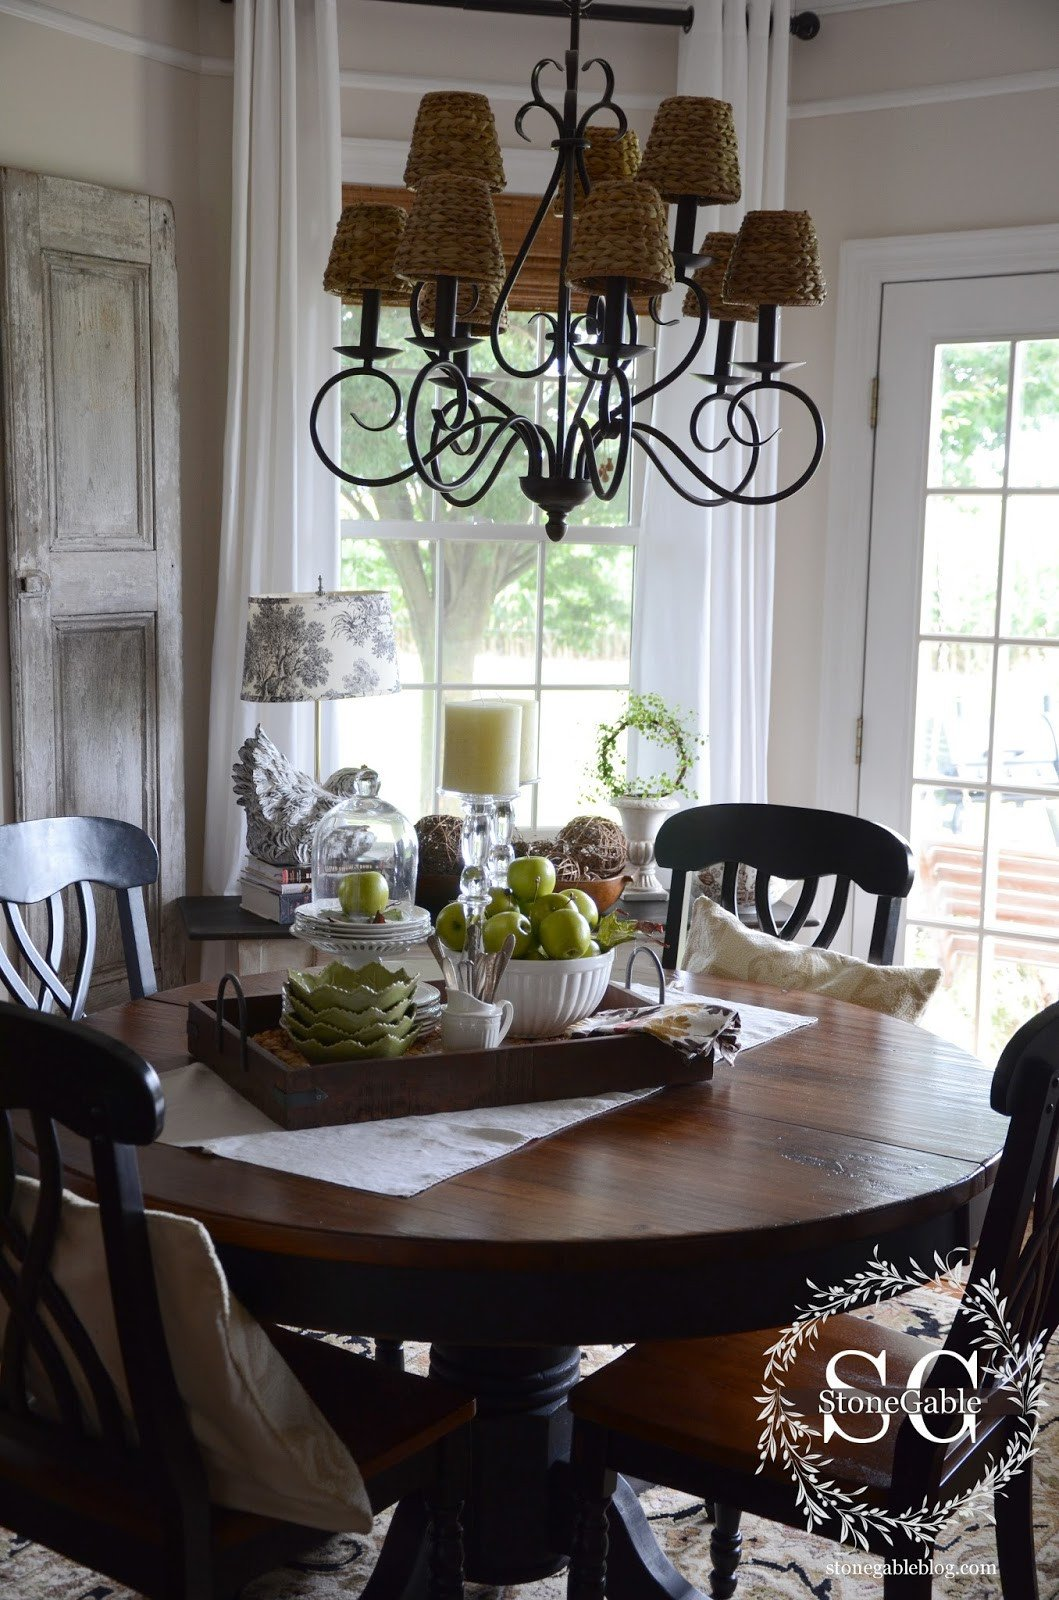 Dining Room Table Decor Ideas Luxury Dining Table Decor for An Everyday Look Tidbits&twine